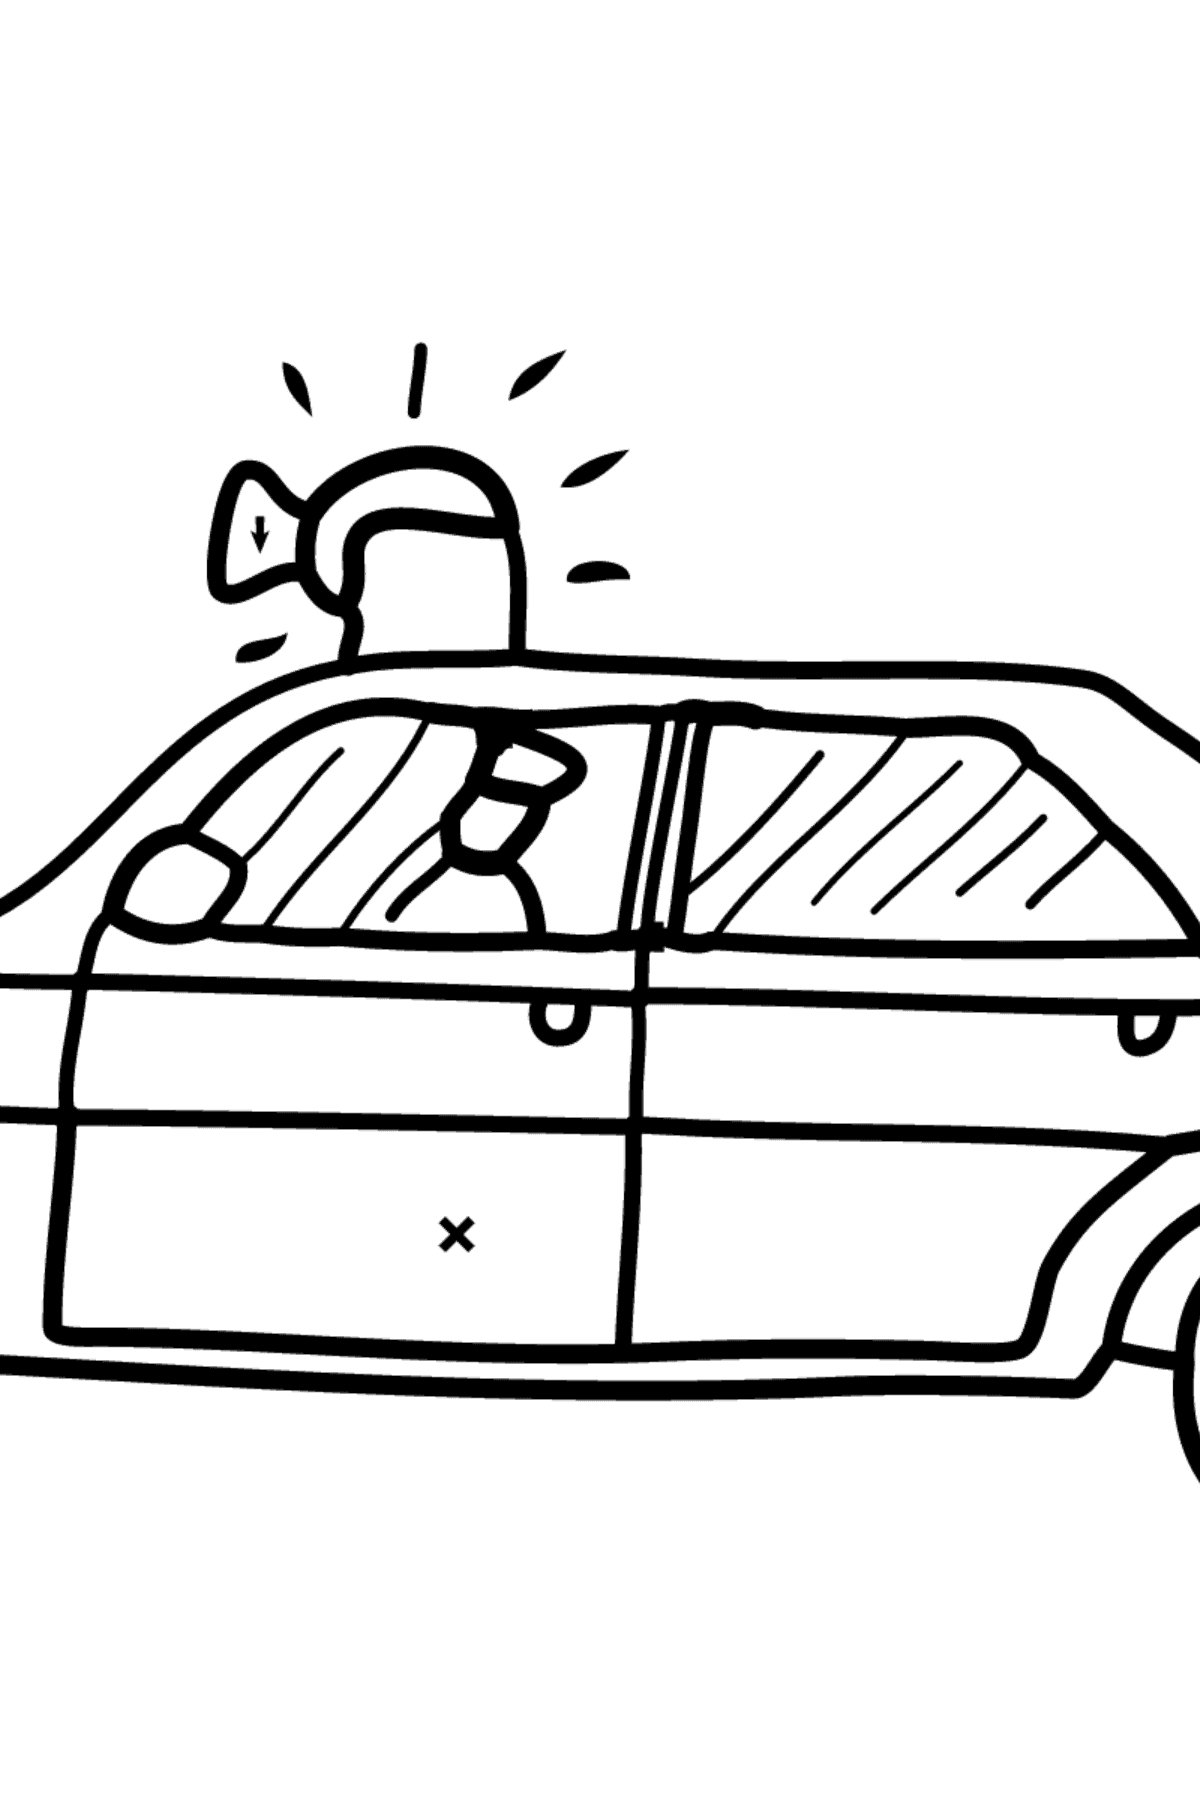 Coloring Page - A Police Car for Children  - Color by Special Symbols